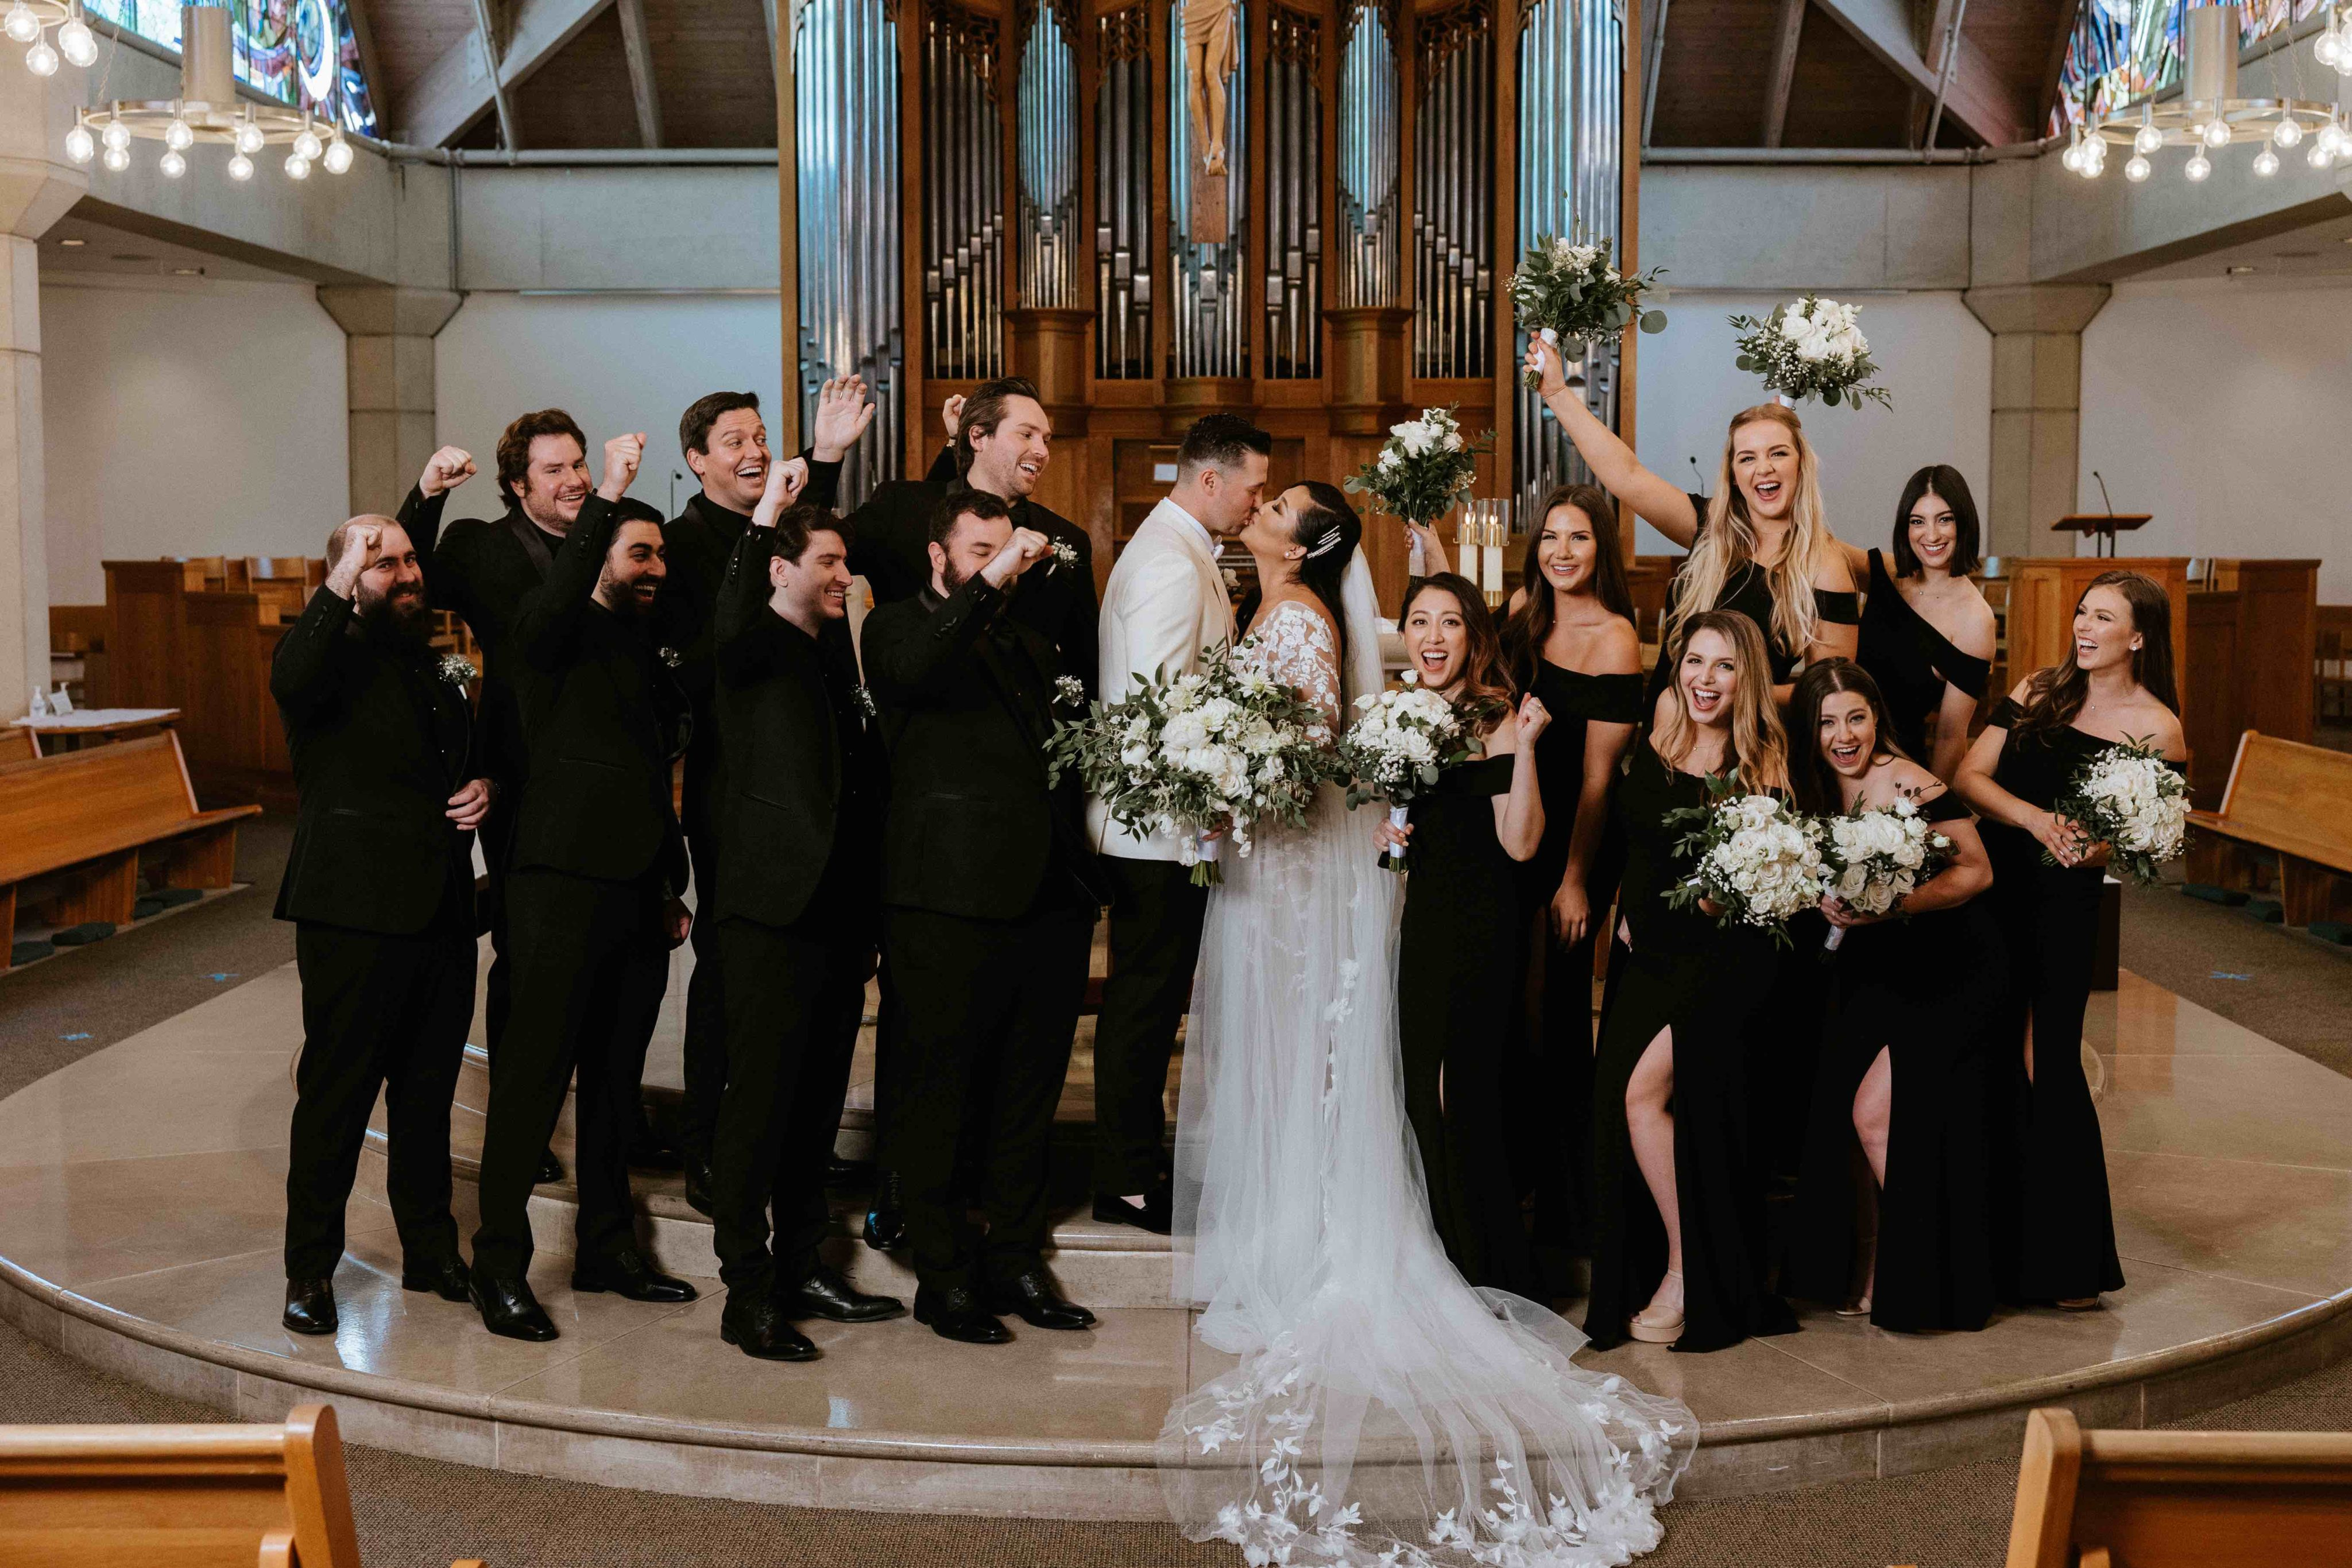 Bride and groom with entire wedding party at altar